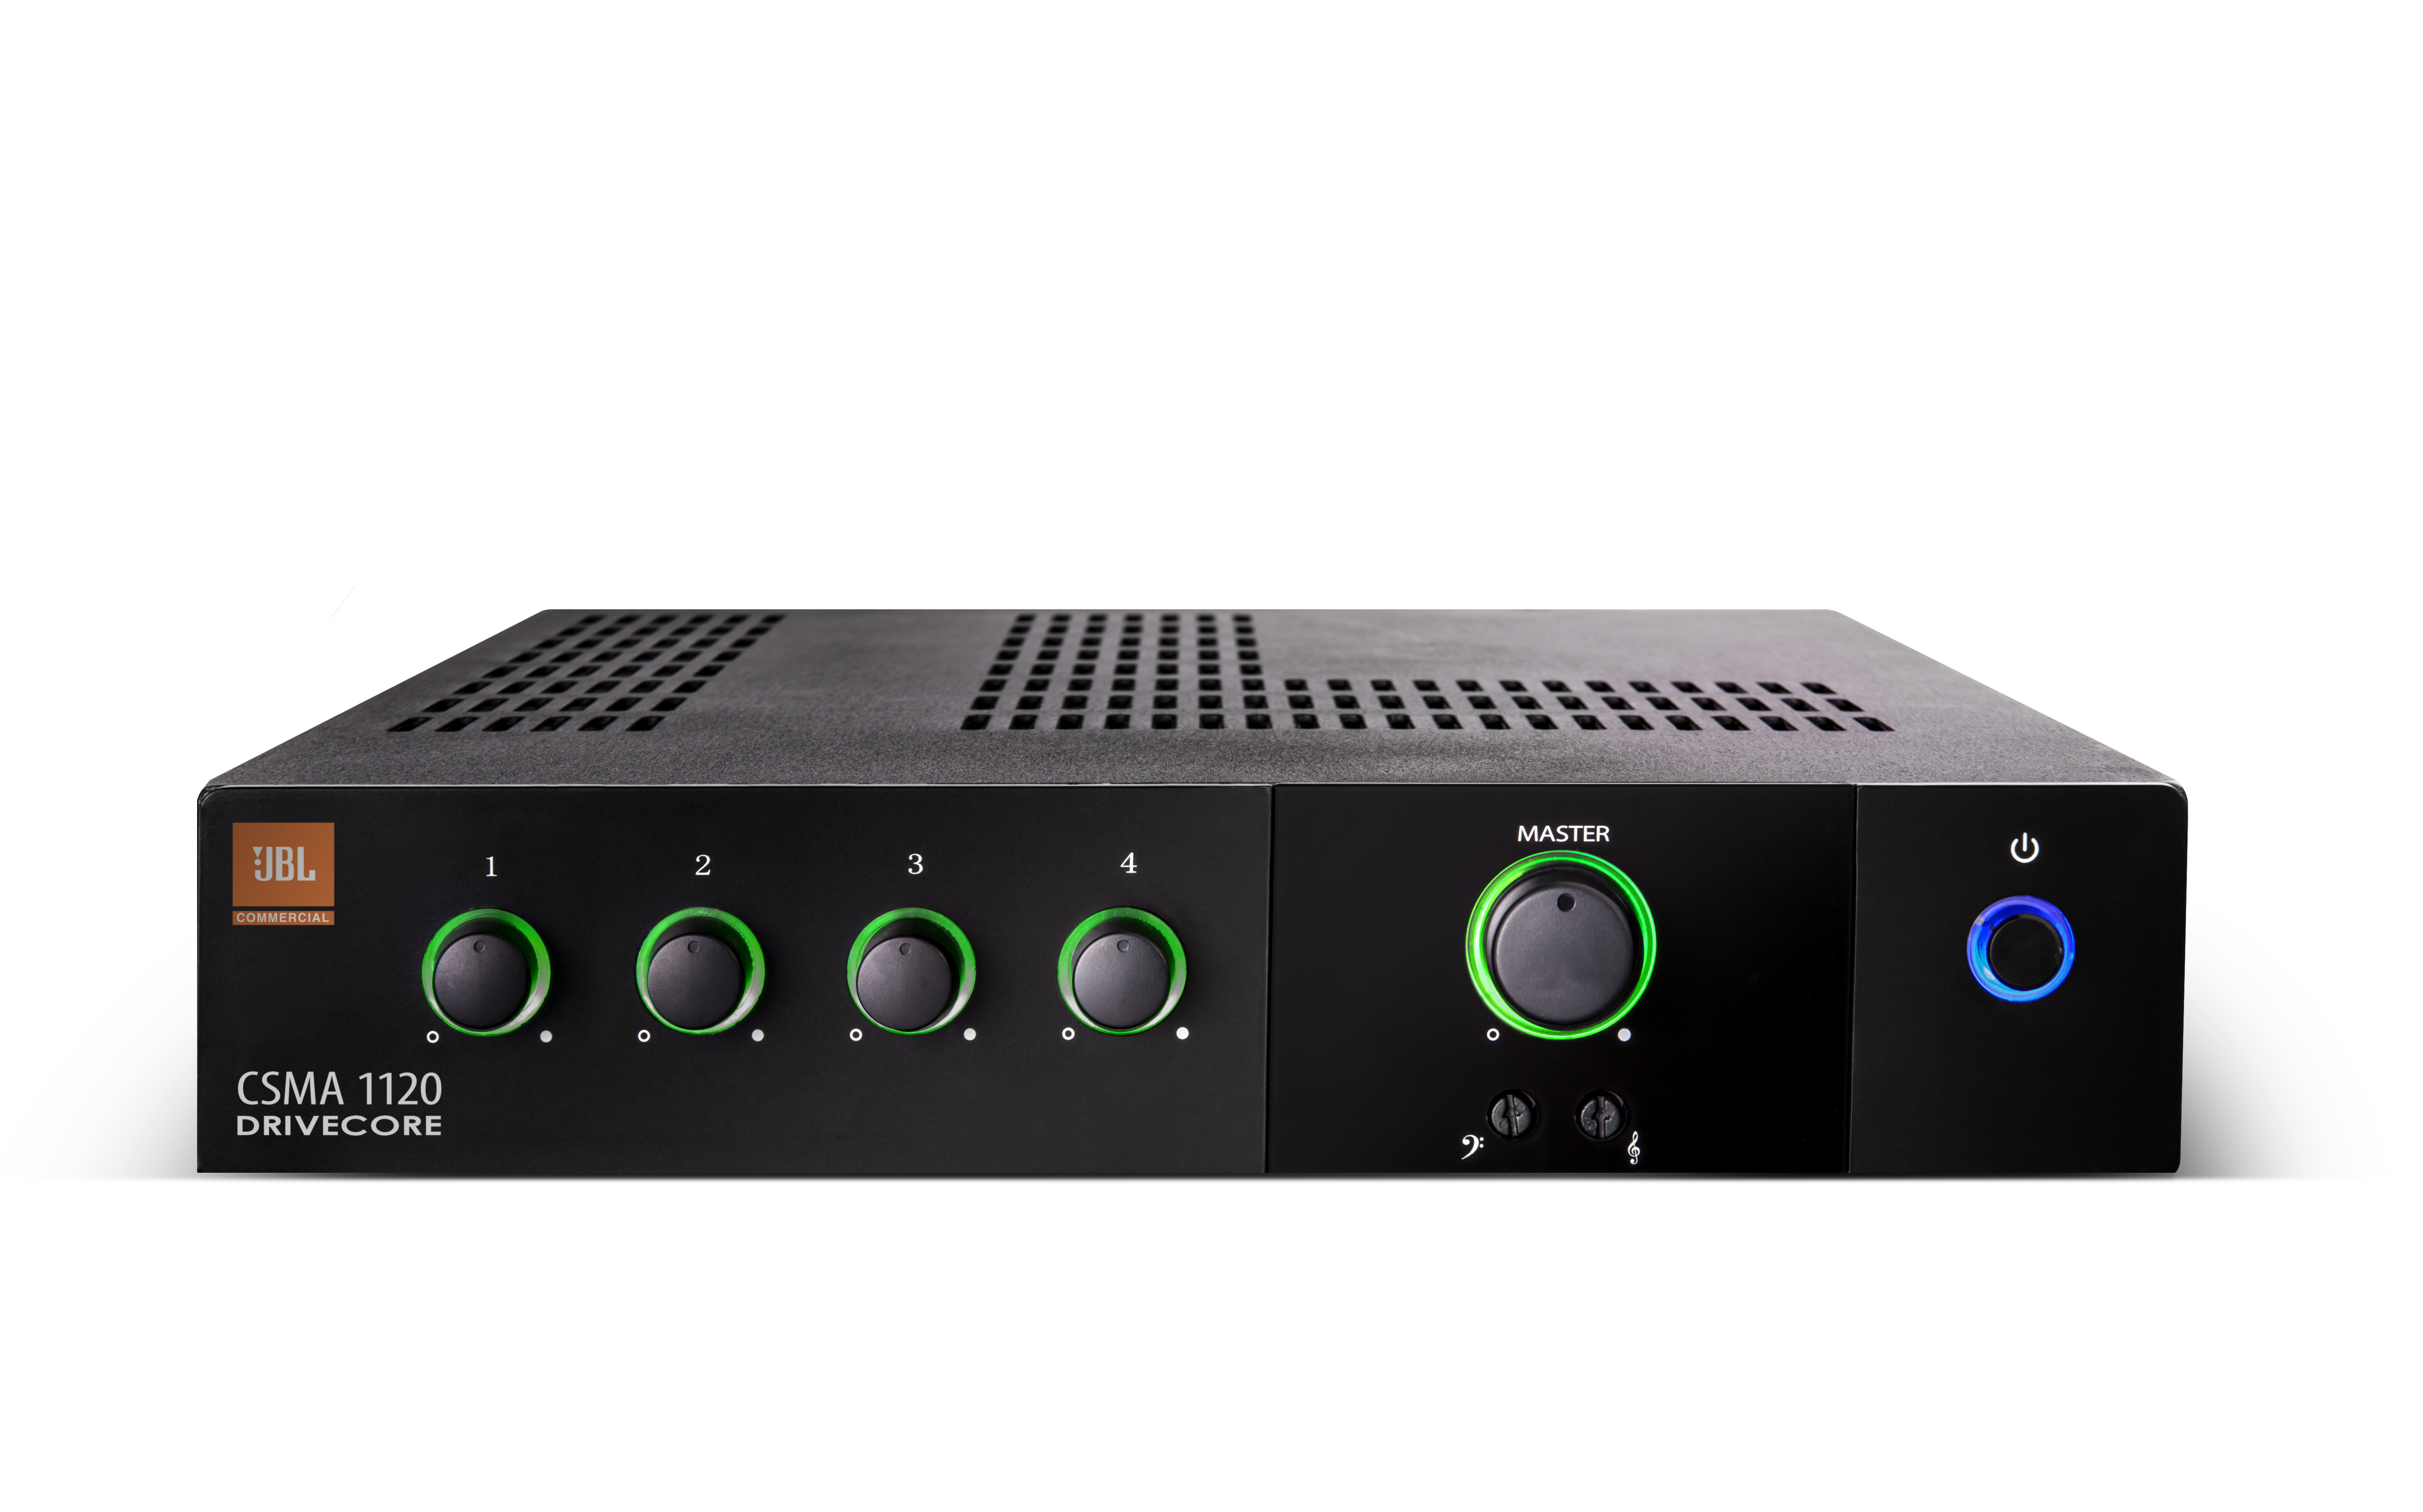 Csma 180 1120 Jbl Commercial Products The Signal Amplifiers Can Set Input And Output Ratio